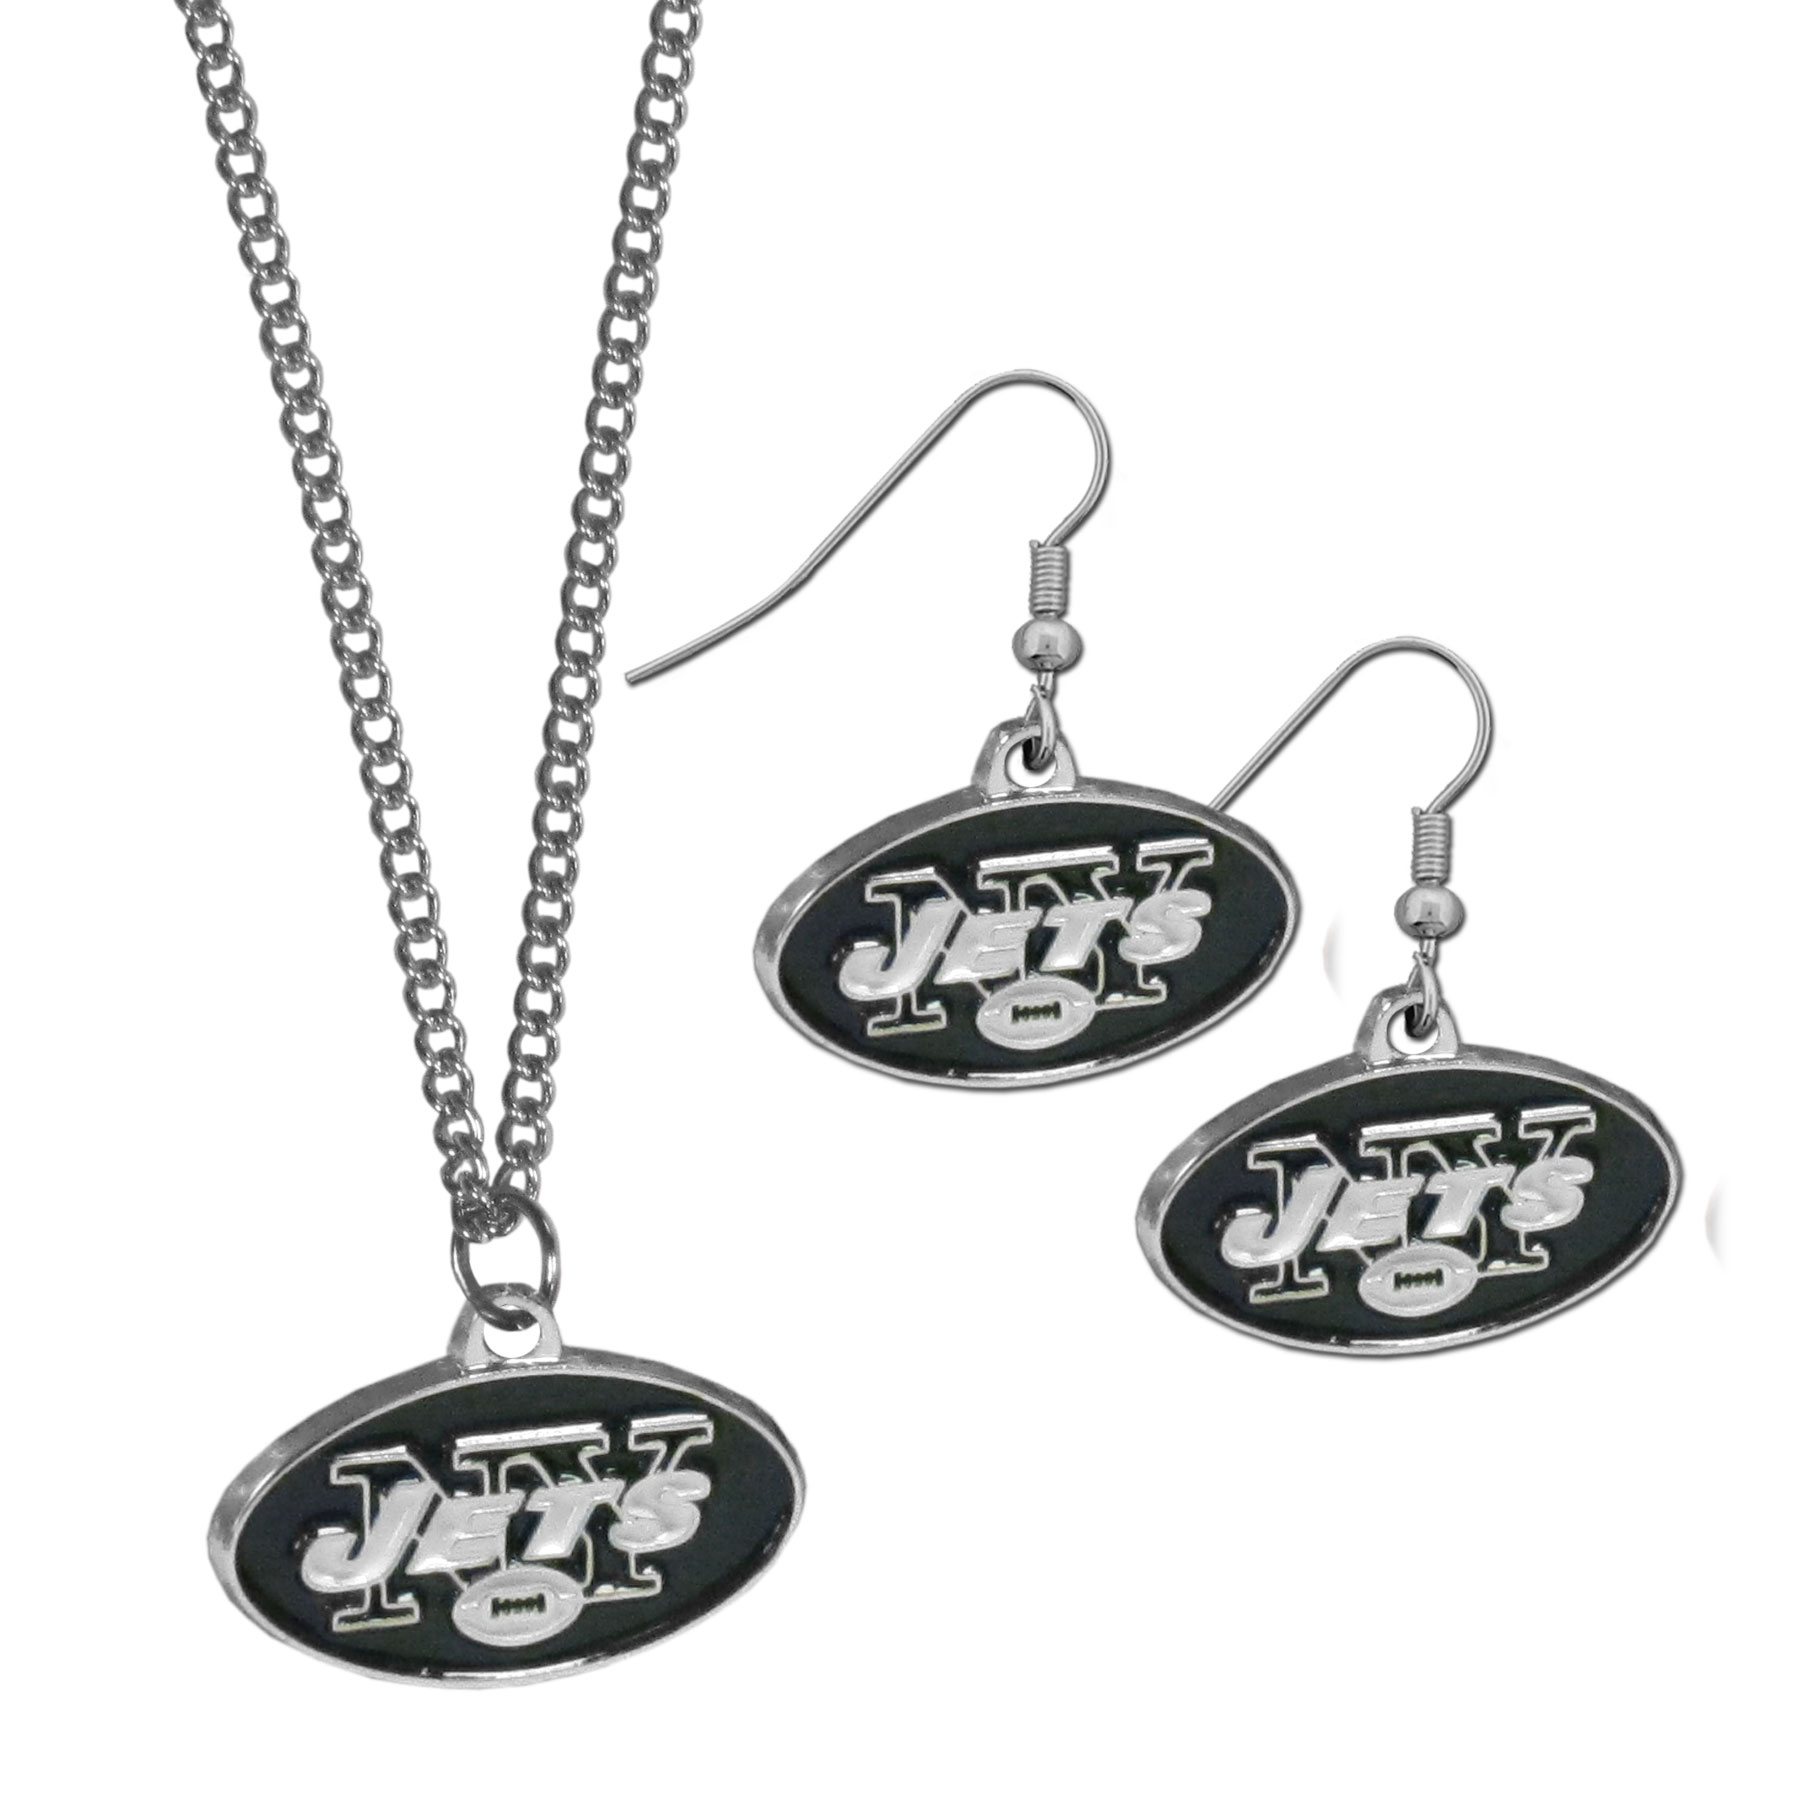 New York Jets Dangle Earrings and Chain Necklace Set - This classic jewelry set contains are most popular New York Jets dangle earrings and 22 inch chain necklace. The trendy, dangle earrings are lightweight and feature a fully cast metal team charm with enameled team colors. The matching necklace completes this fashion forward combo and is a spirited set that is perfect for game day but nice enough for everyday.